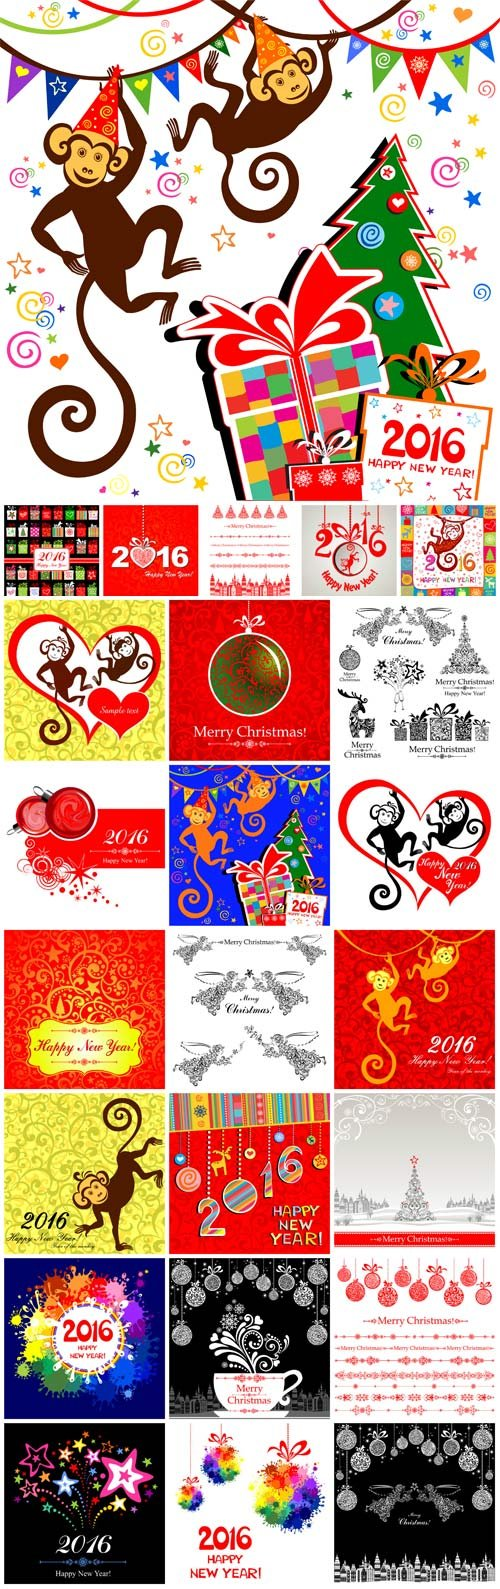 Merry Christmas, New Year vector, backgrounds